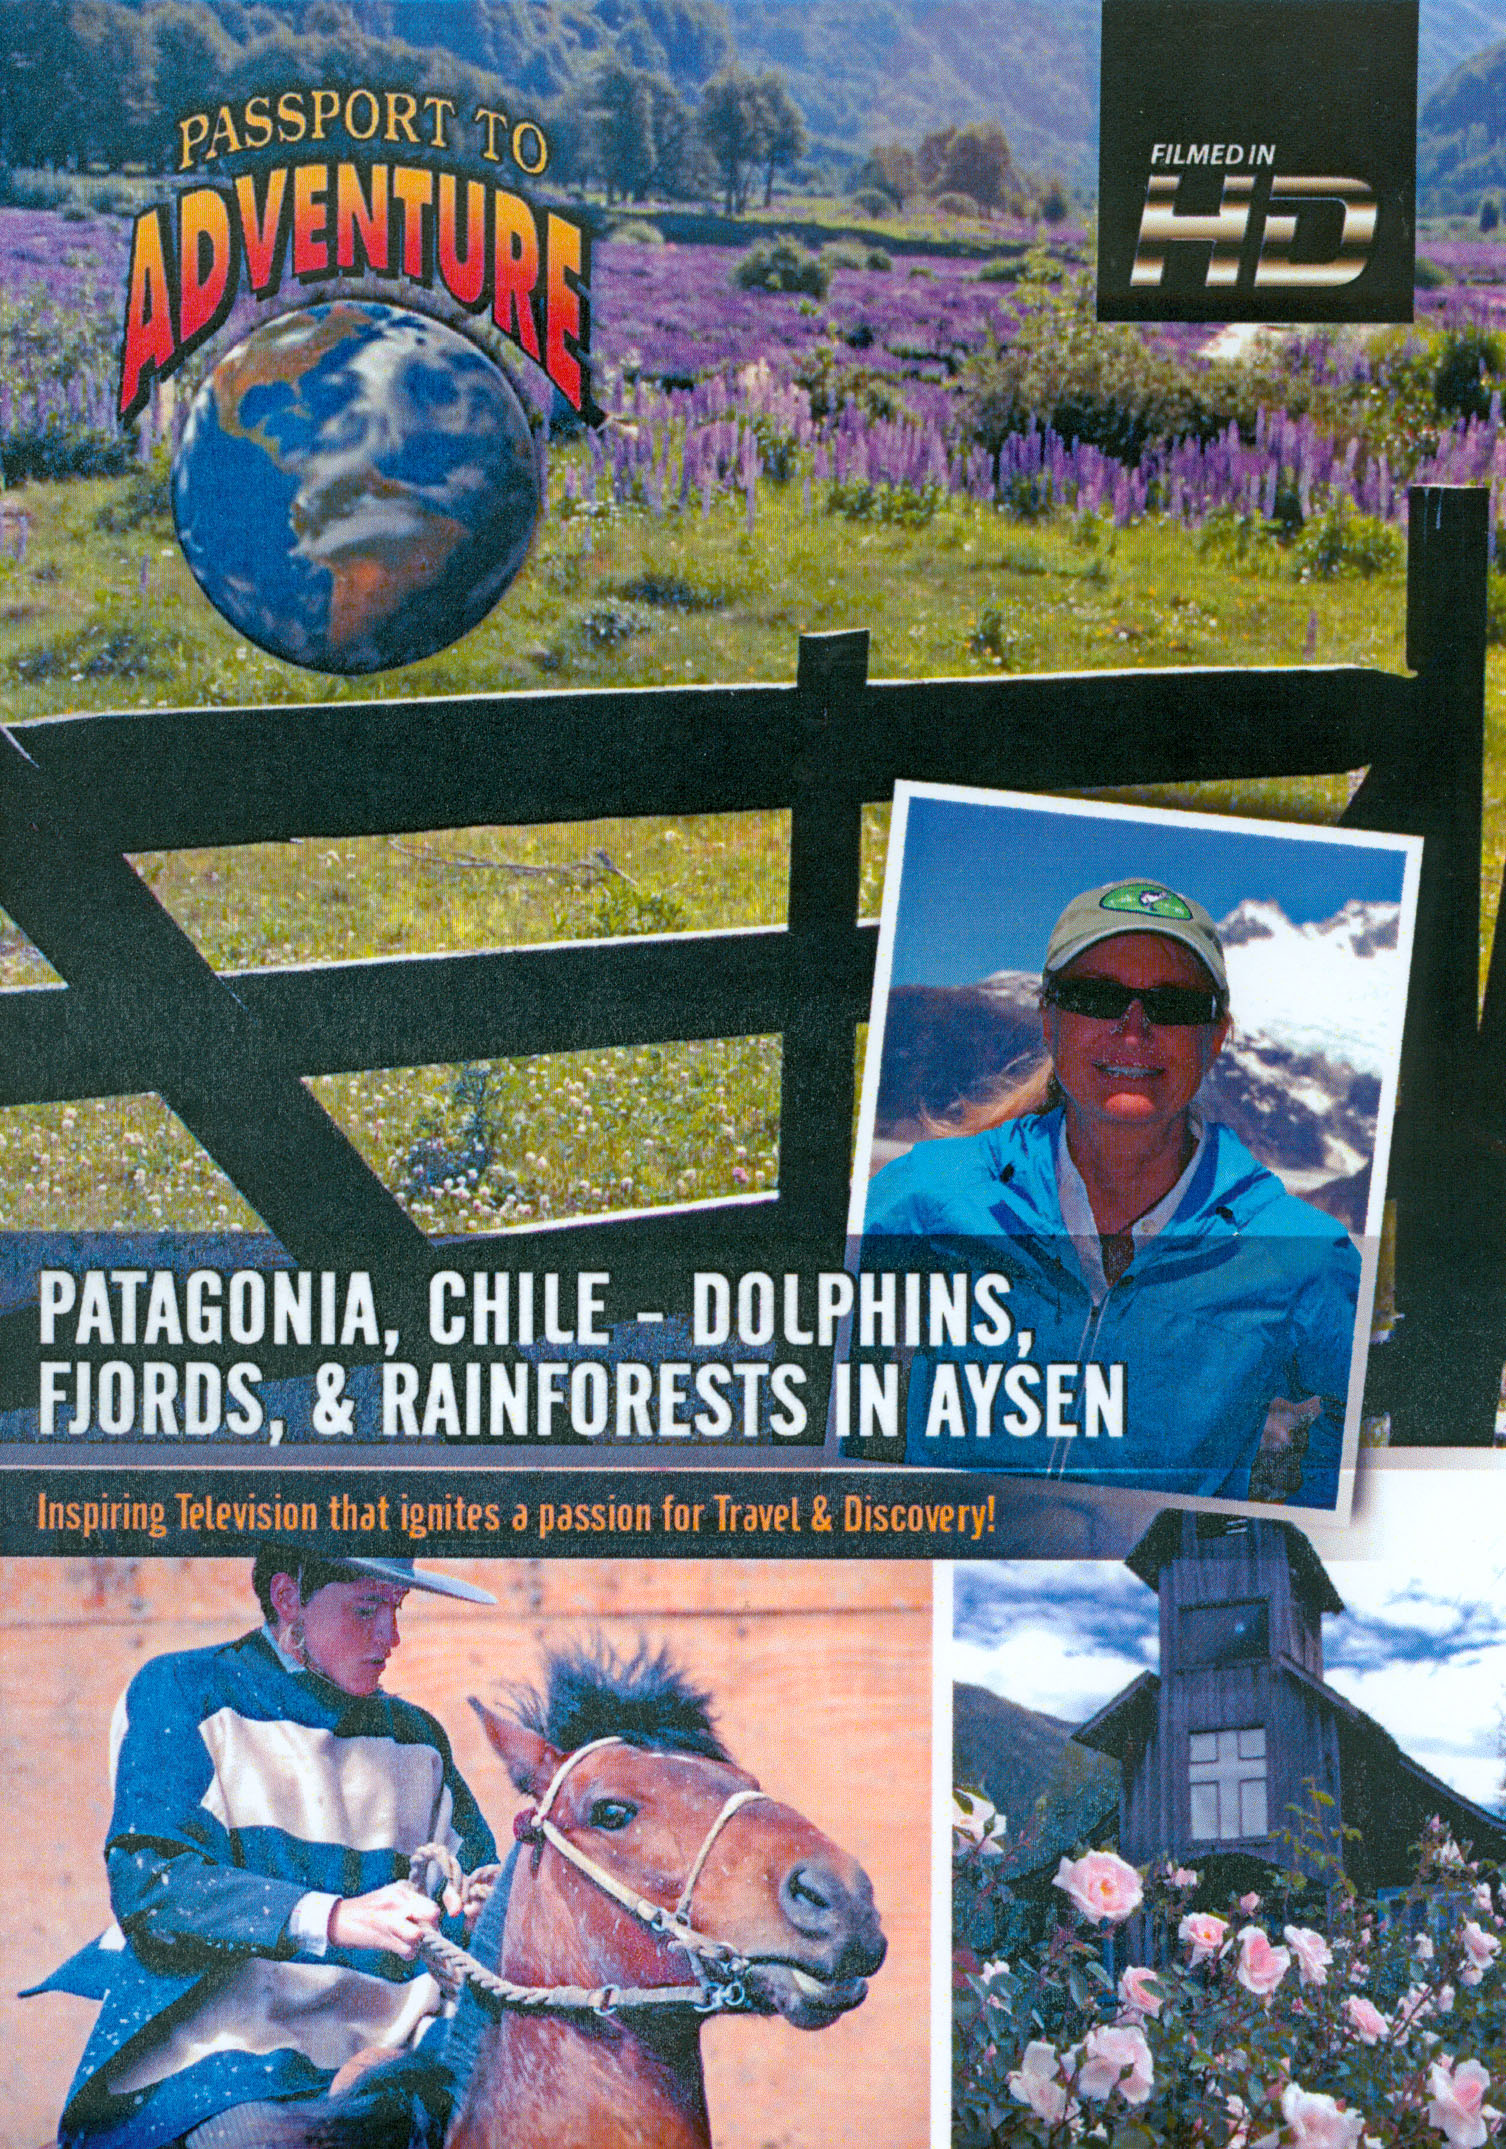 Passport to Adventure: Patagonia, Chile - Dolphins, Fjords, & Rainforests in Aysen